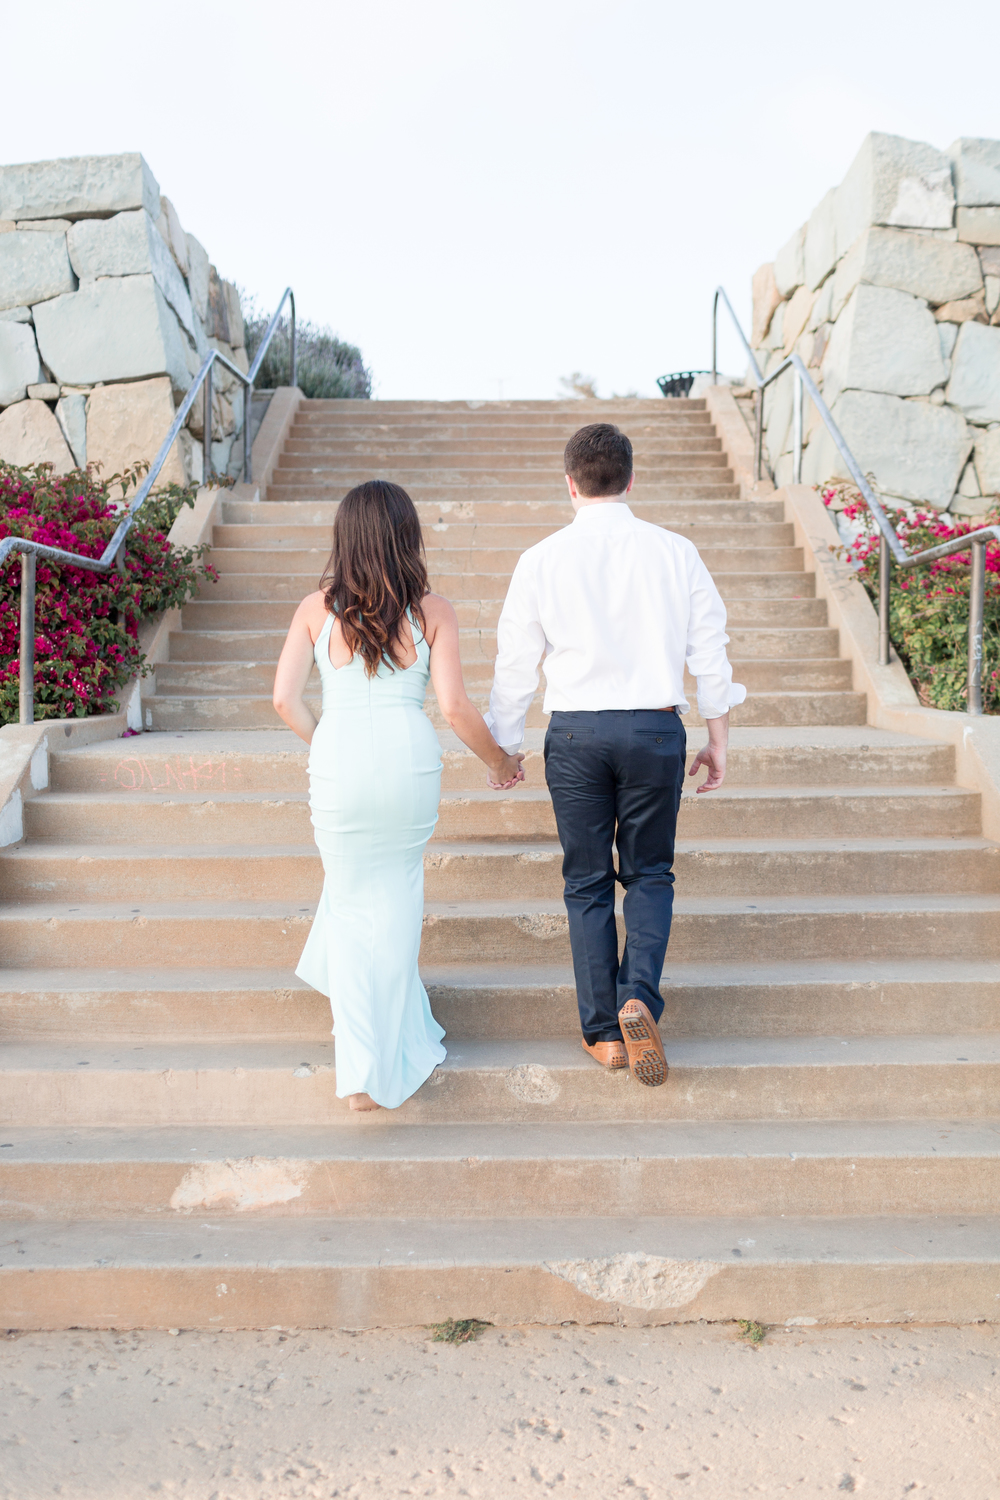 CourtneyPaigePhotography_EngagementPhotography_Soto-54.jpg